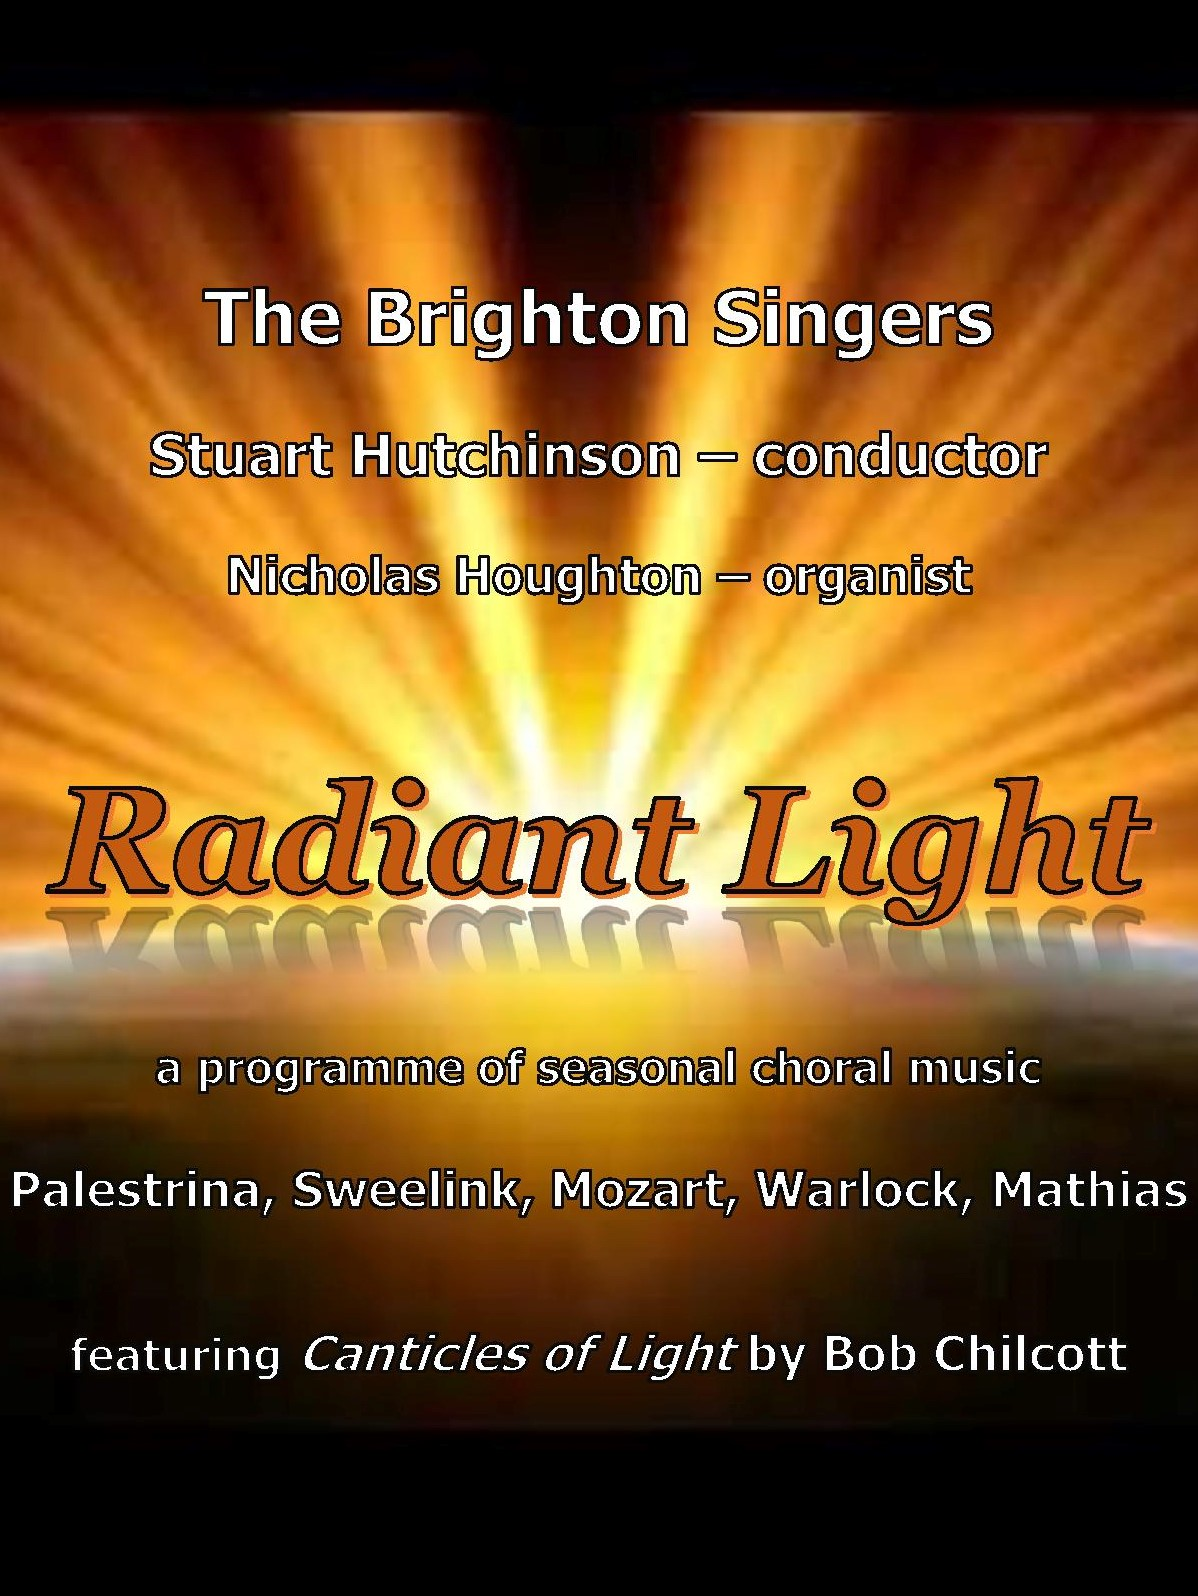 Radiant Light - an evening of seasonal choral music